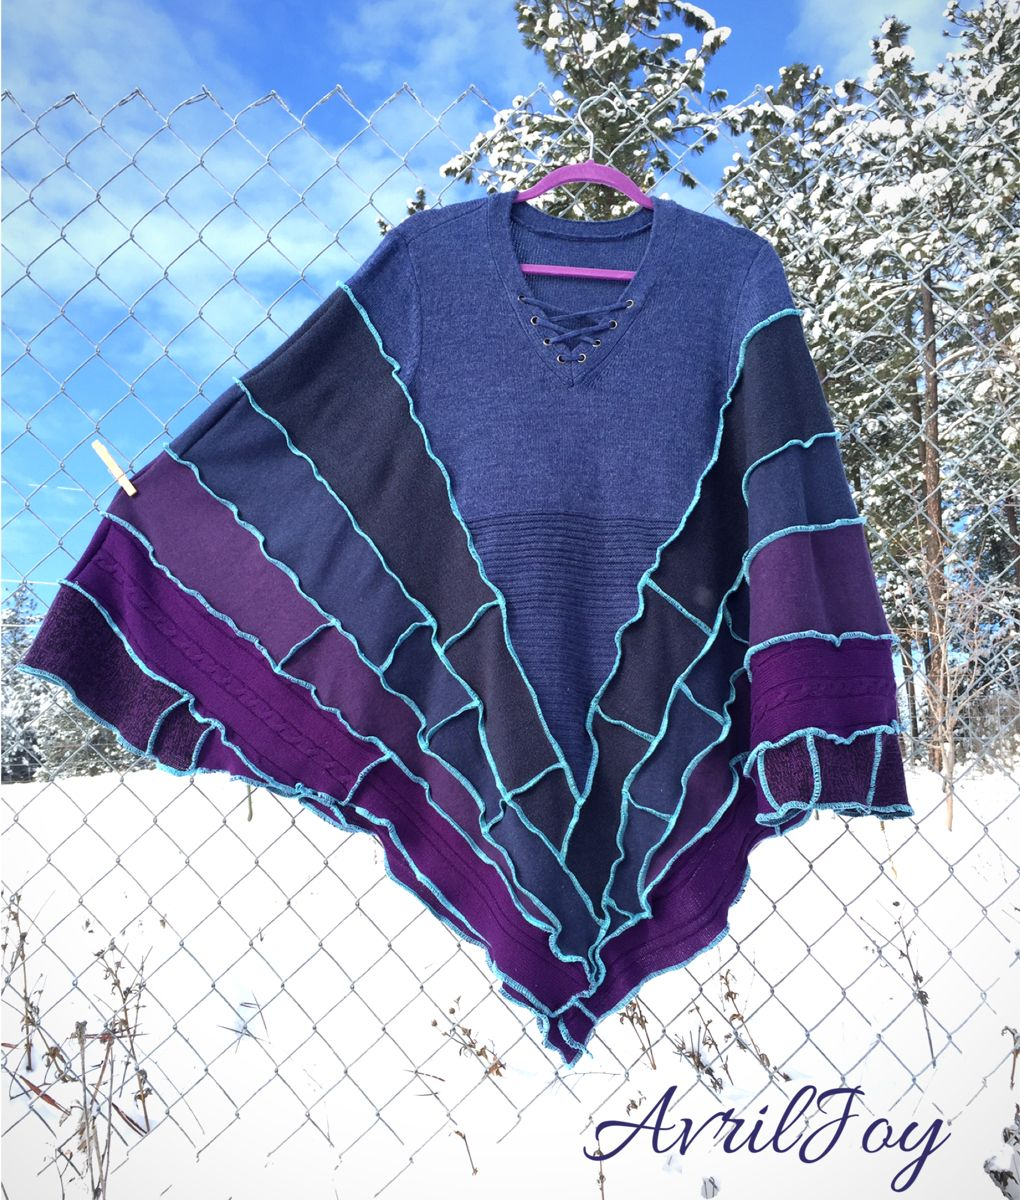 This is a beautiful lightweight Upcycled Sweatercoat Pixie Poncho inspired by Picasso's Blue Period palette. One size fits most. Very loose fitting and super cozy. #sweaterweather #sweaters #sweatercoat #ponchosweater #poncho #pixiecoat #handmade #etsy #etsyfinds #etsyartist #valentinesdaygiftideas #forher #oneofakind #uniquefashion